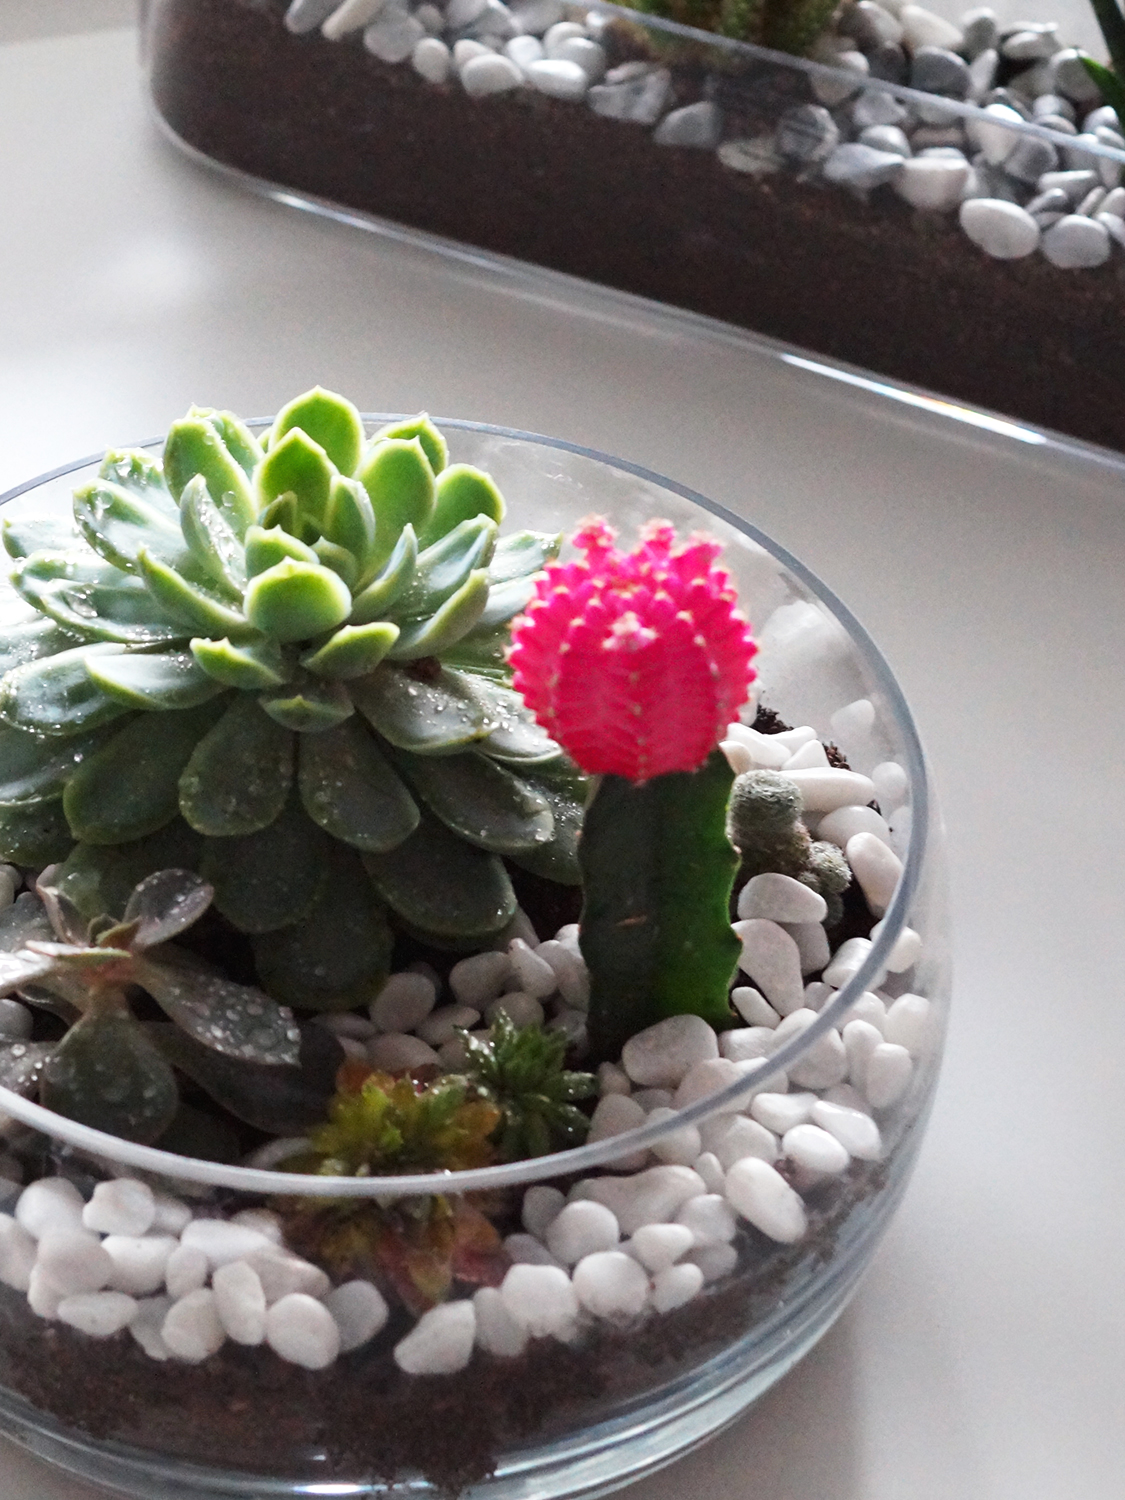 How to make your own Cactus & Succulent Terrarium